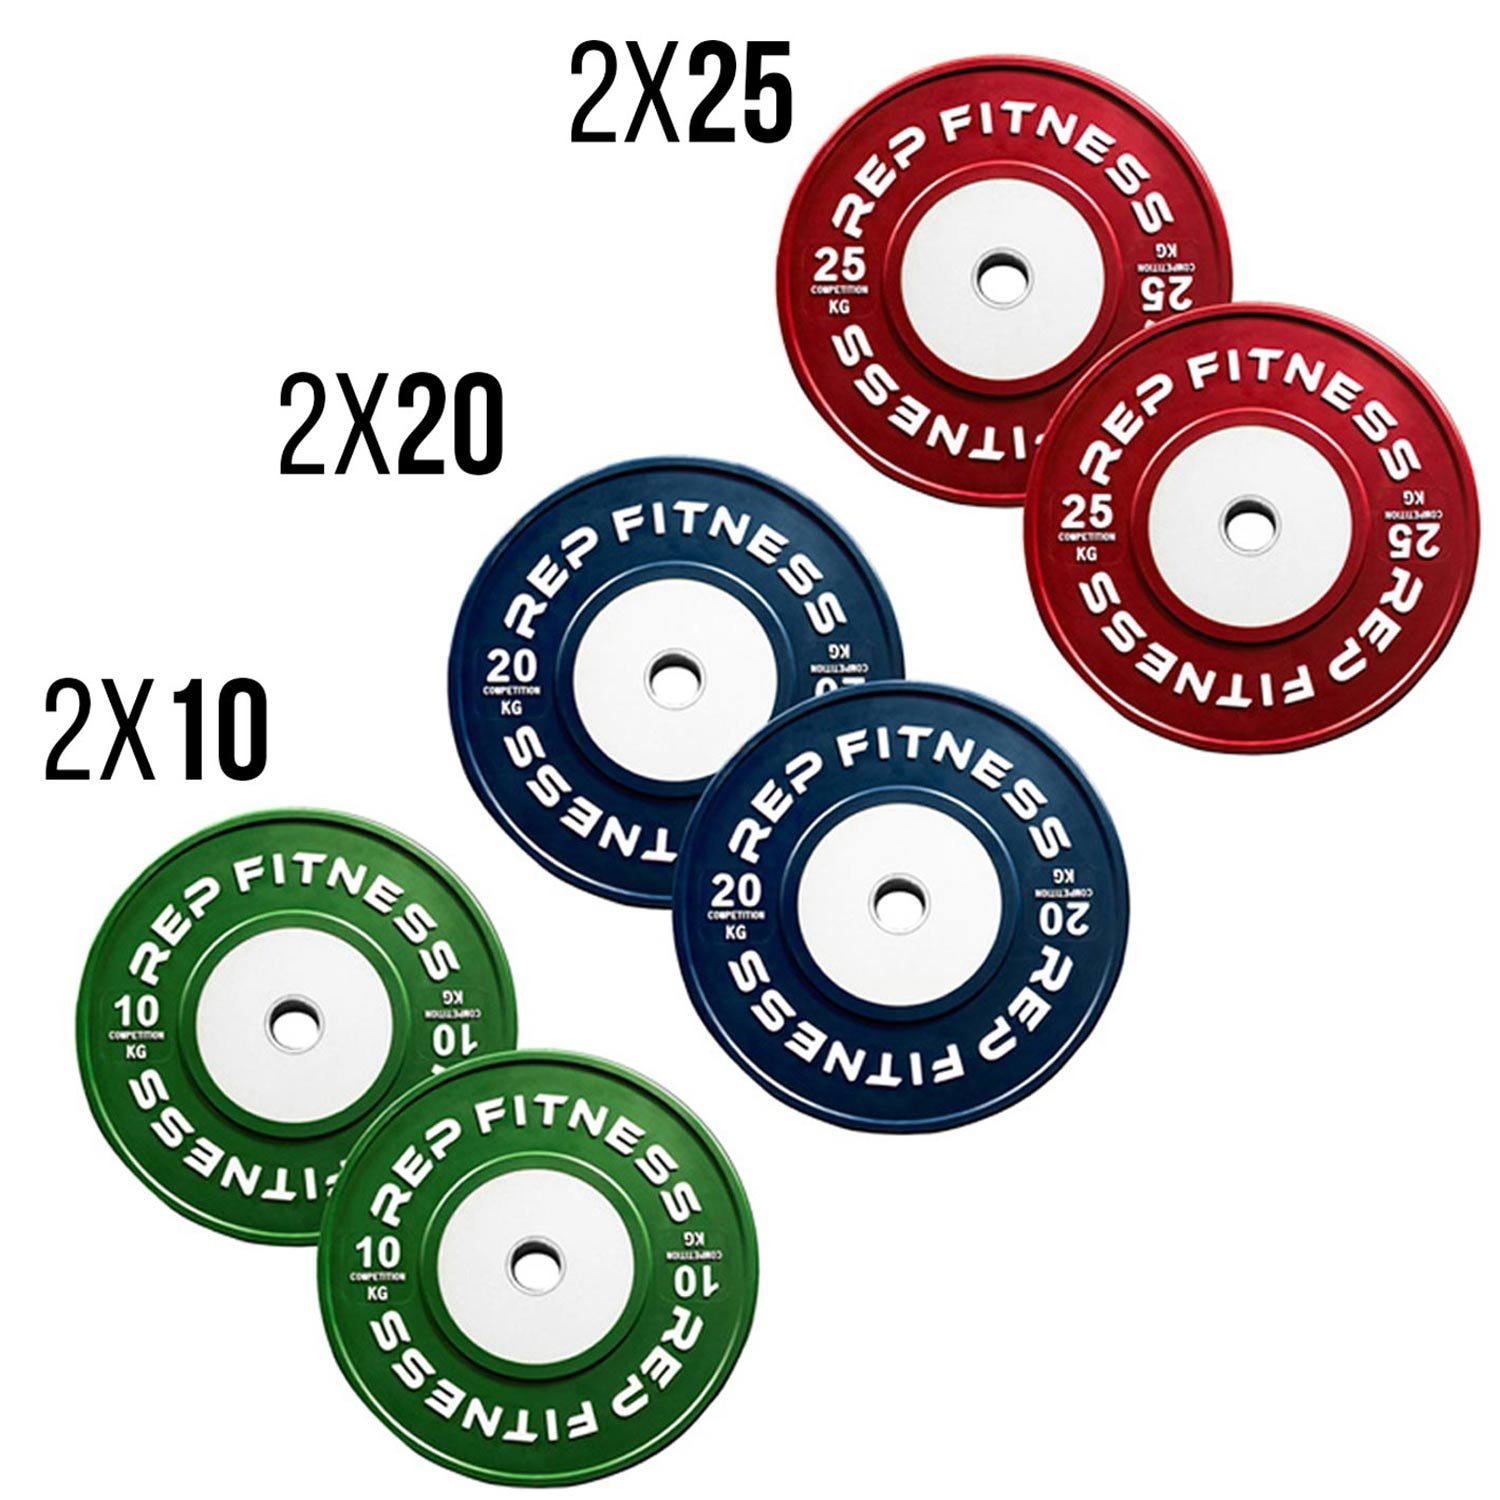 Rep kg Competition Bumper Plates for Olympic Weightlifting, 110kg Set